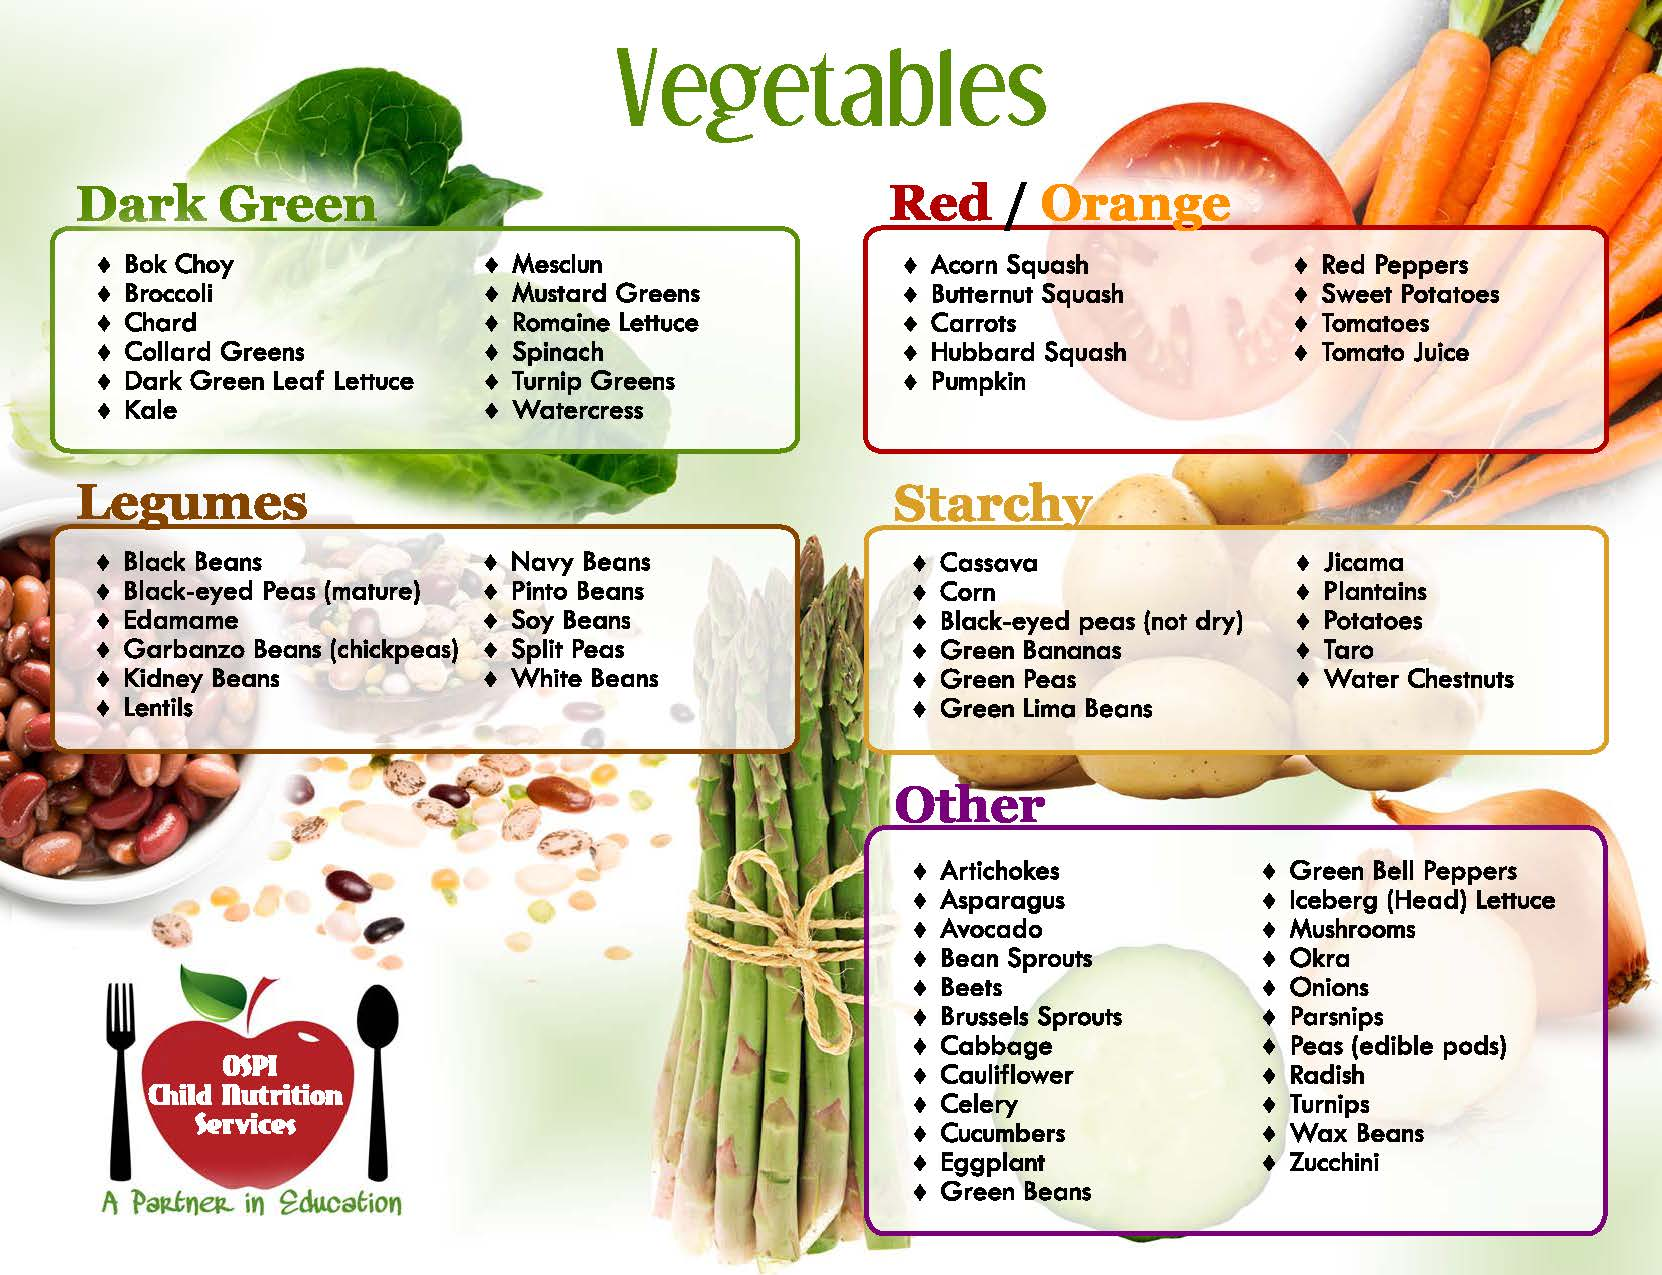 school-nutrition-vegetable-subgroup_624347